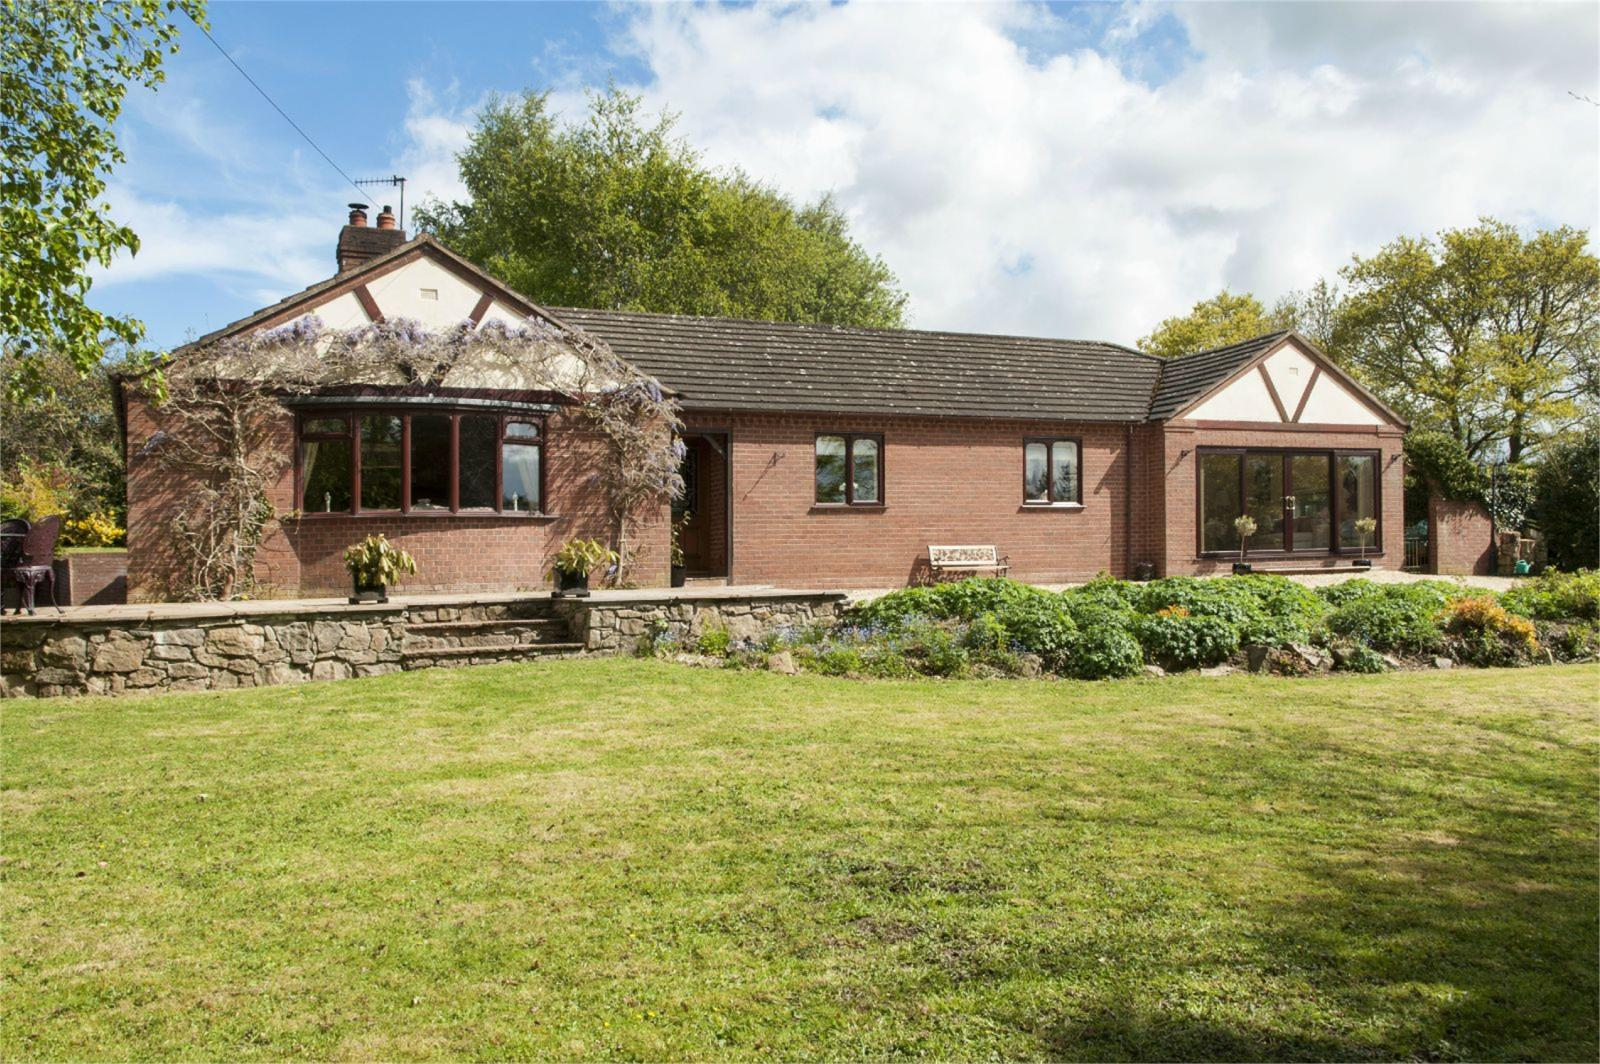 3 Bedrooms Detached Bungalow for sale in Lyndale, Bushmoor, Shropshire, SY7